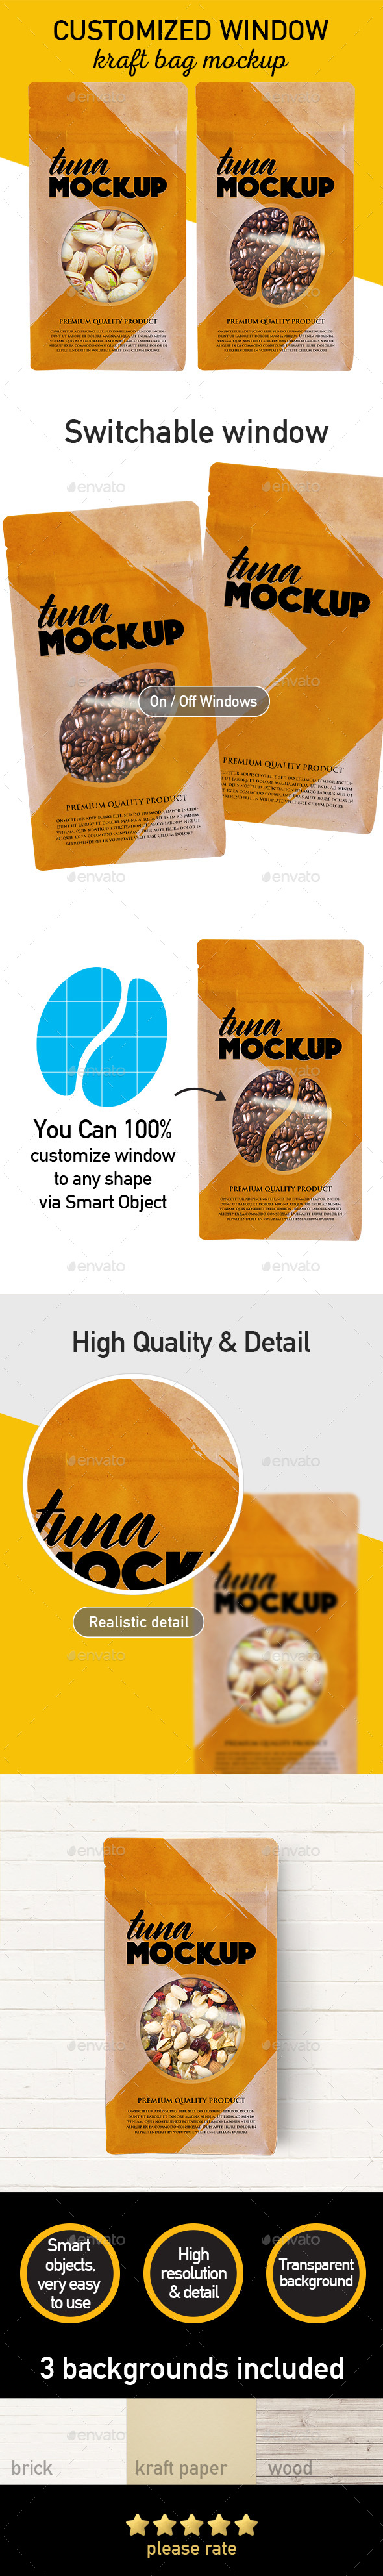 Window Customized Kraft Bag Mockup - Product Mock-Ups Graphics